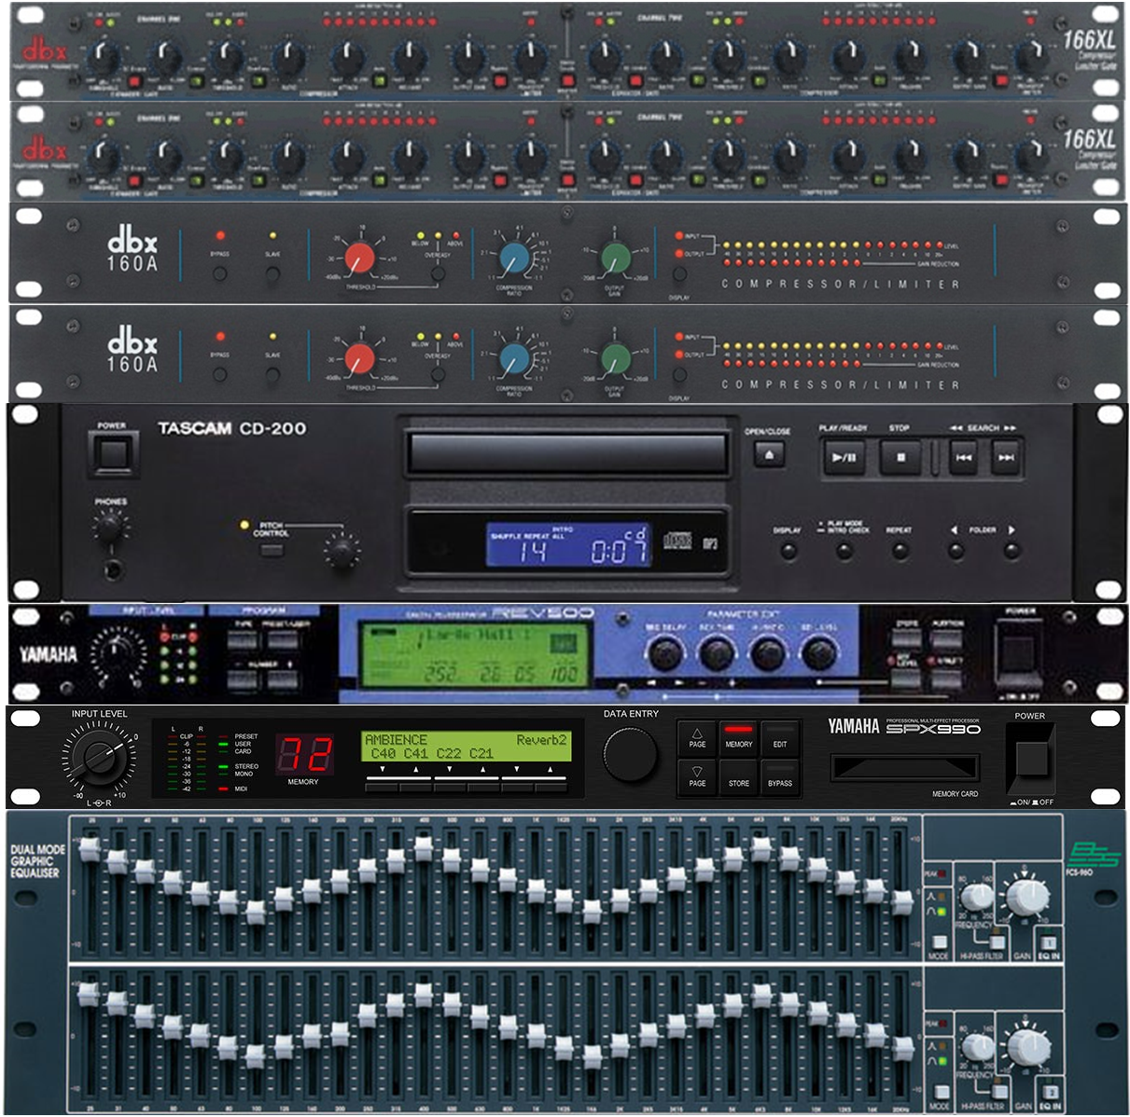 BSS, DBX and Yamaha effects processors.